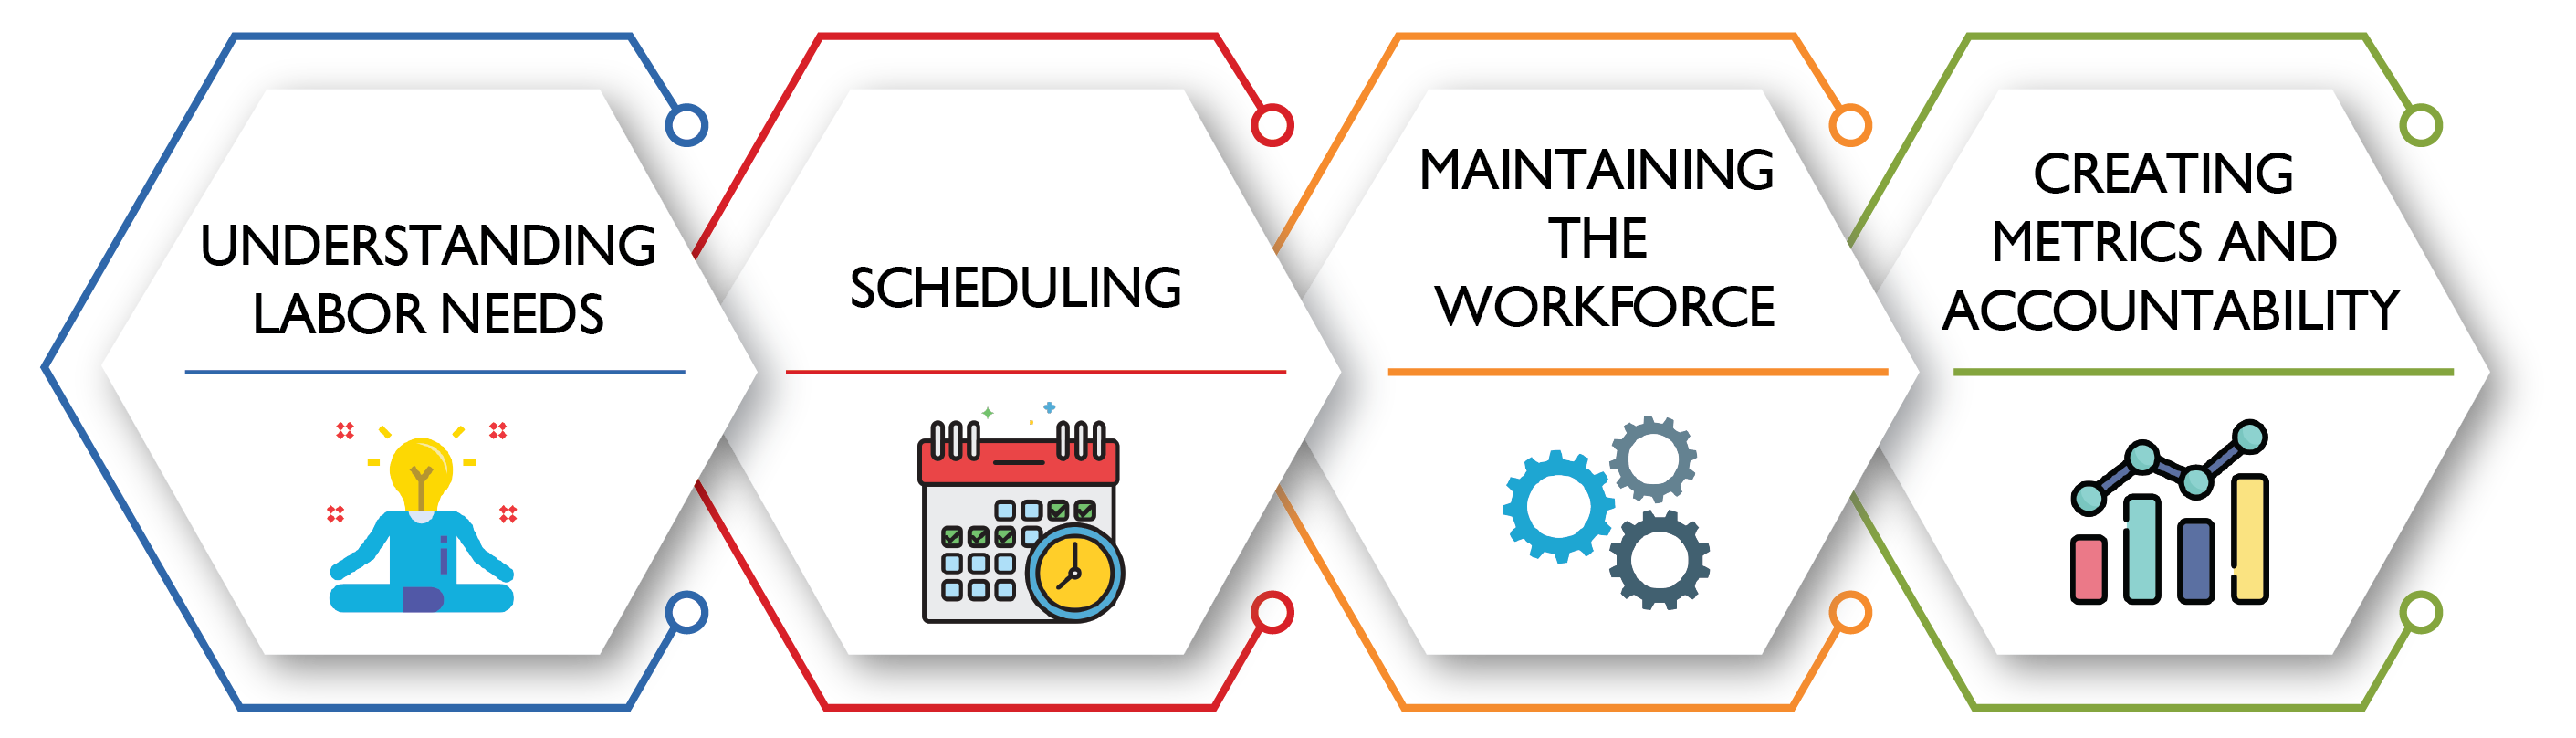 workforce management solution process